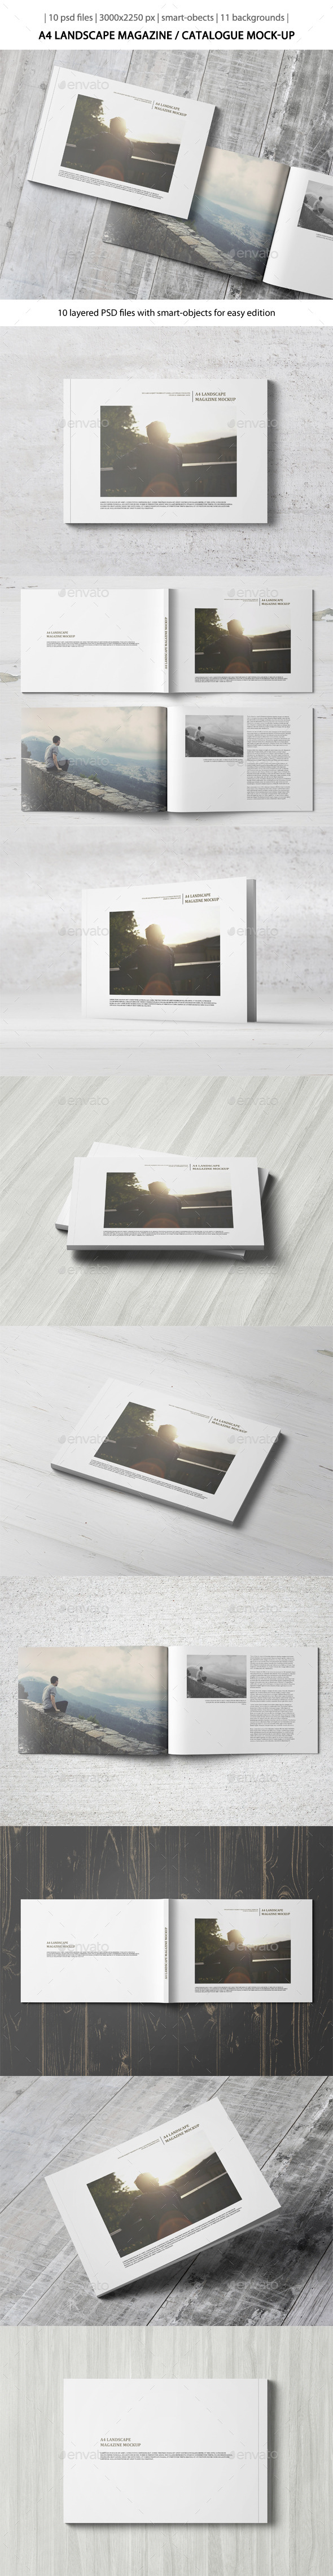 GraphicRiver A4 Landscape Magazine Catalogue Mock-Up 10813084